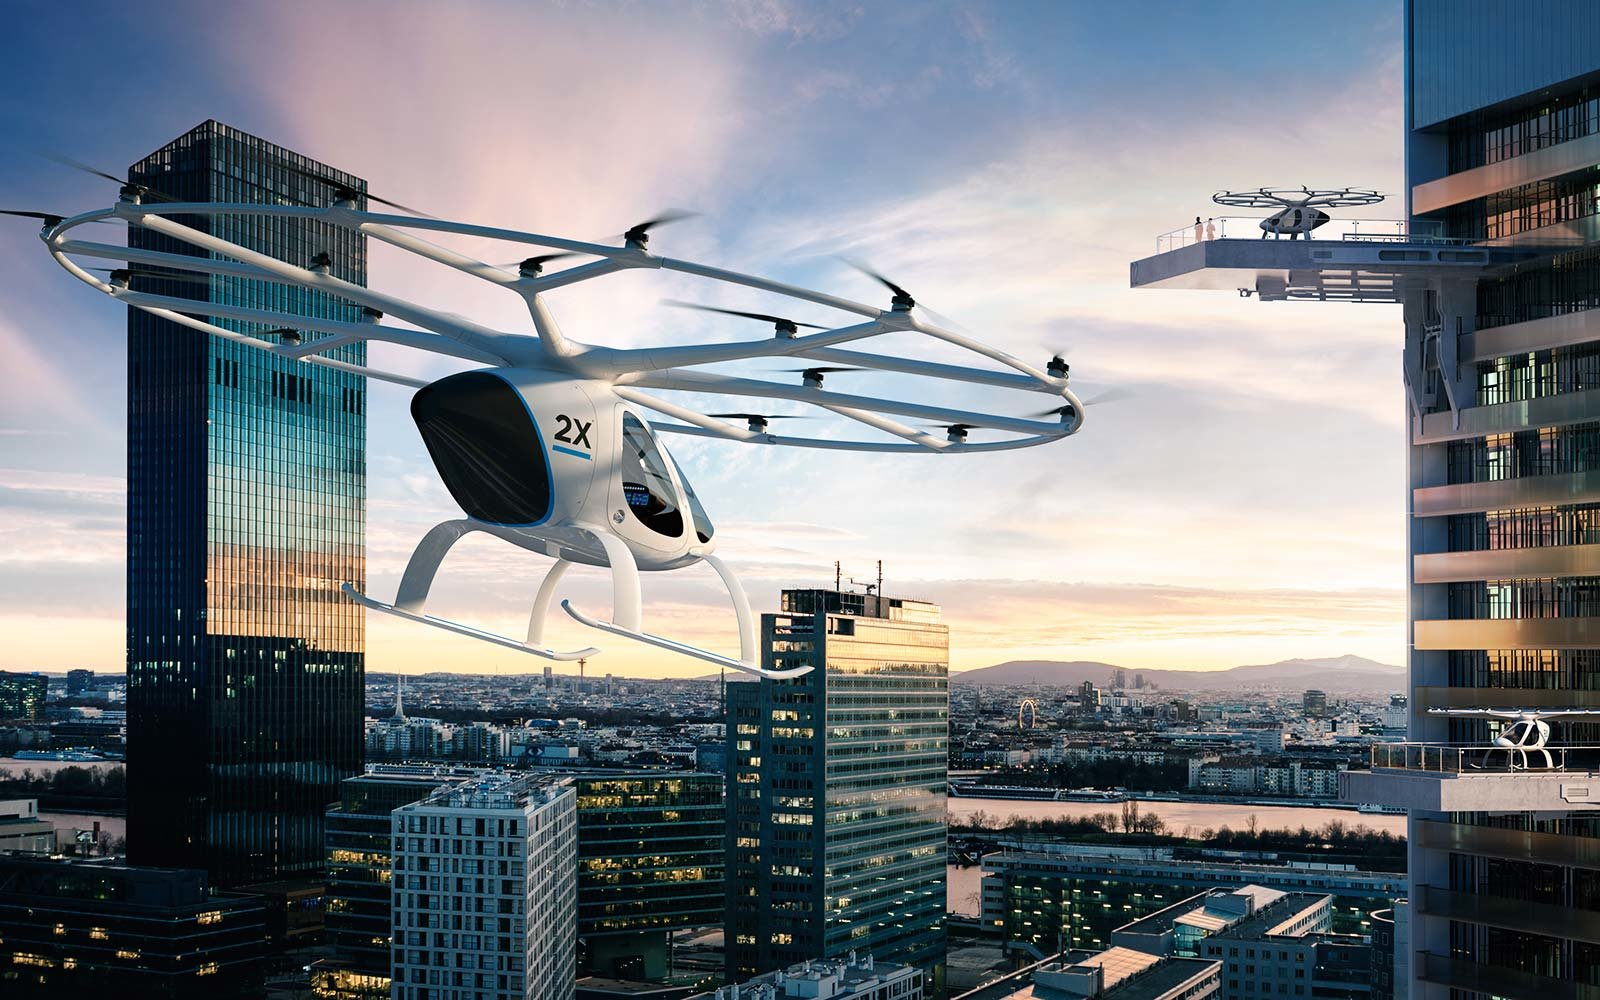 Volocopter flying taxi drone Dubai United Arab Emirates